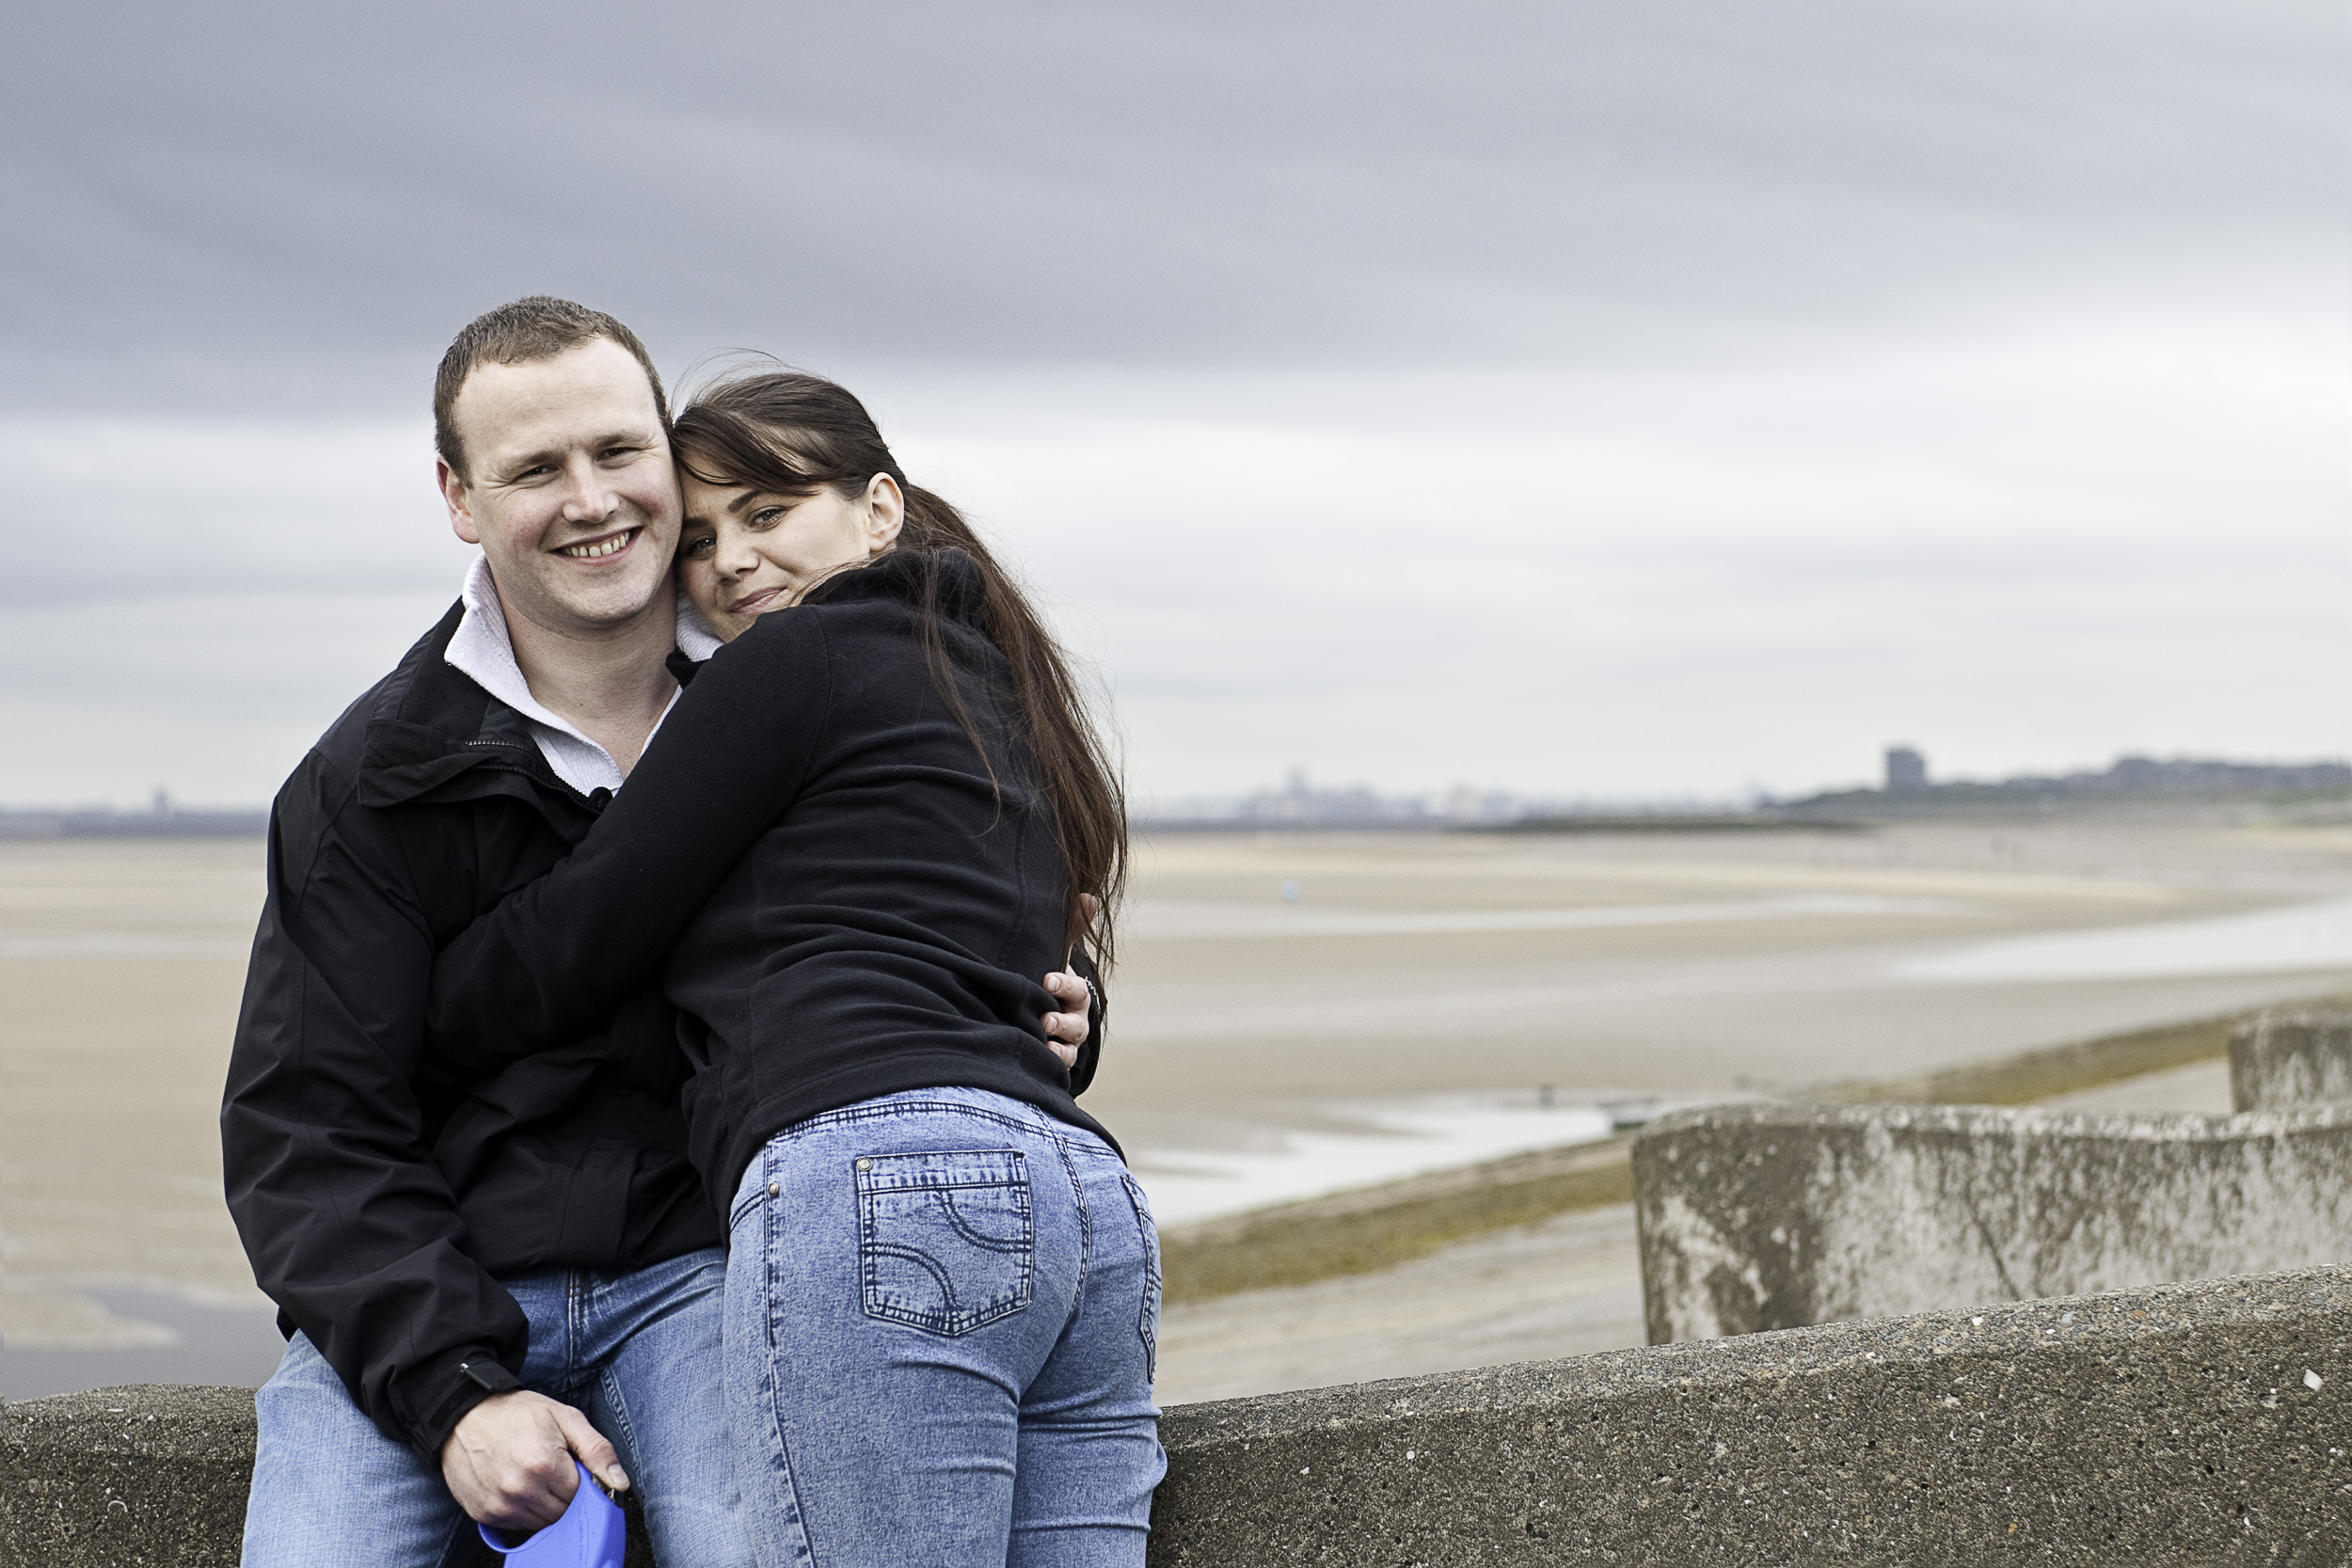 One of my first engagement shoots this lovely couple enjoyed walking along the coastal path, views of Liverpool in the background.